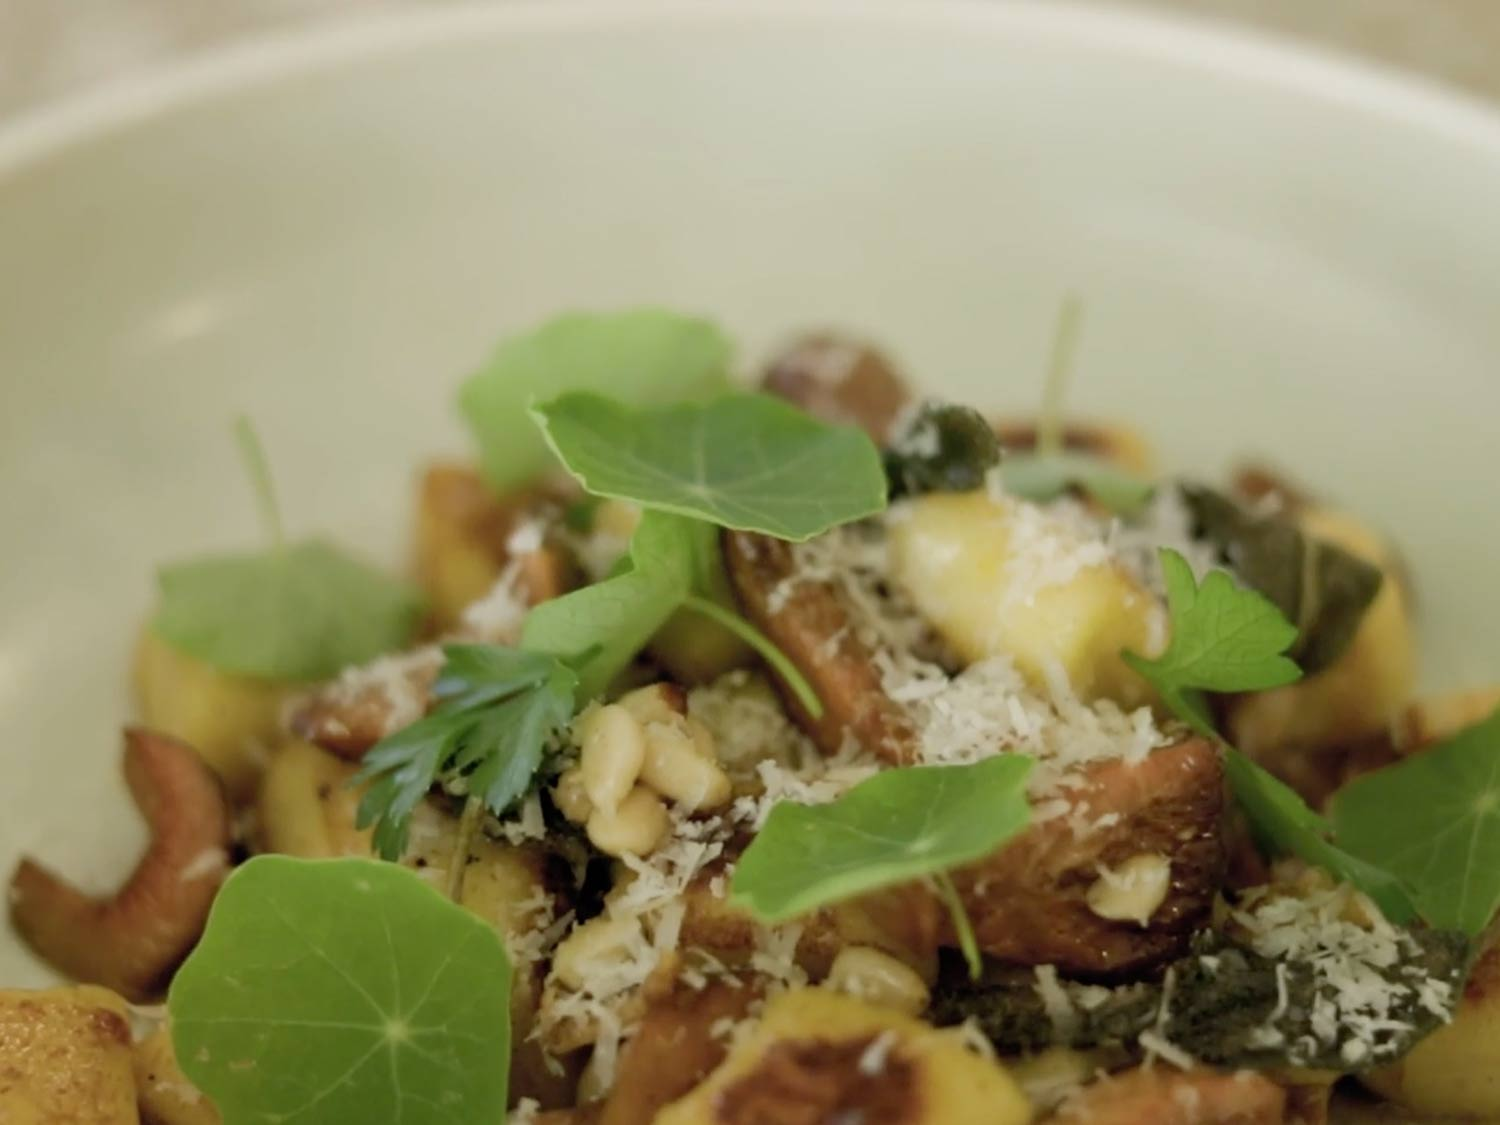 Making Gnocchi With Michael Demagistris